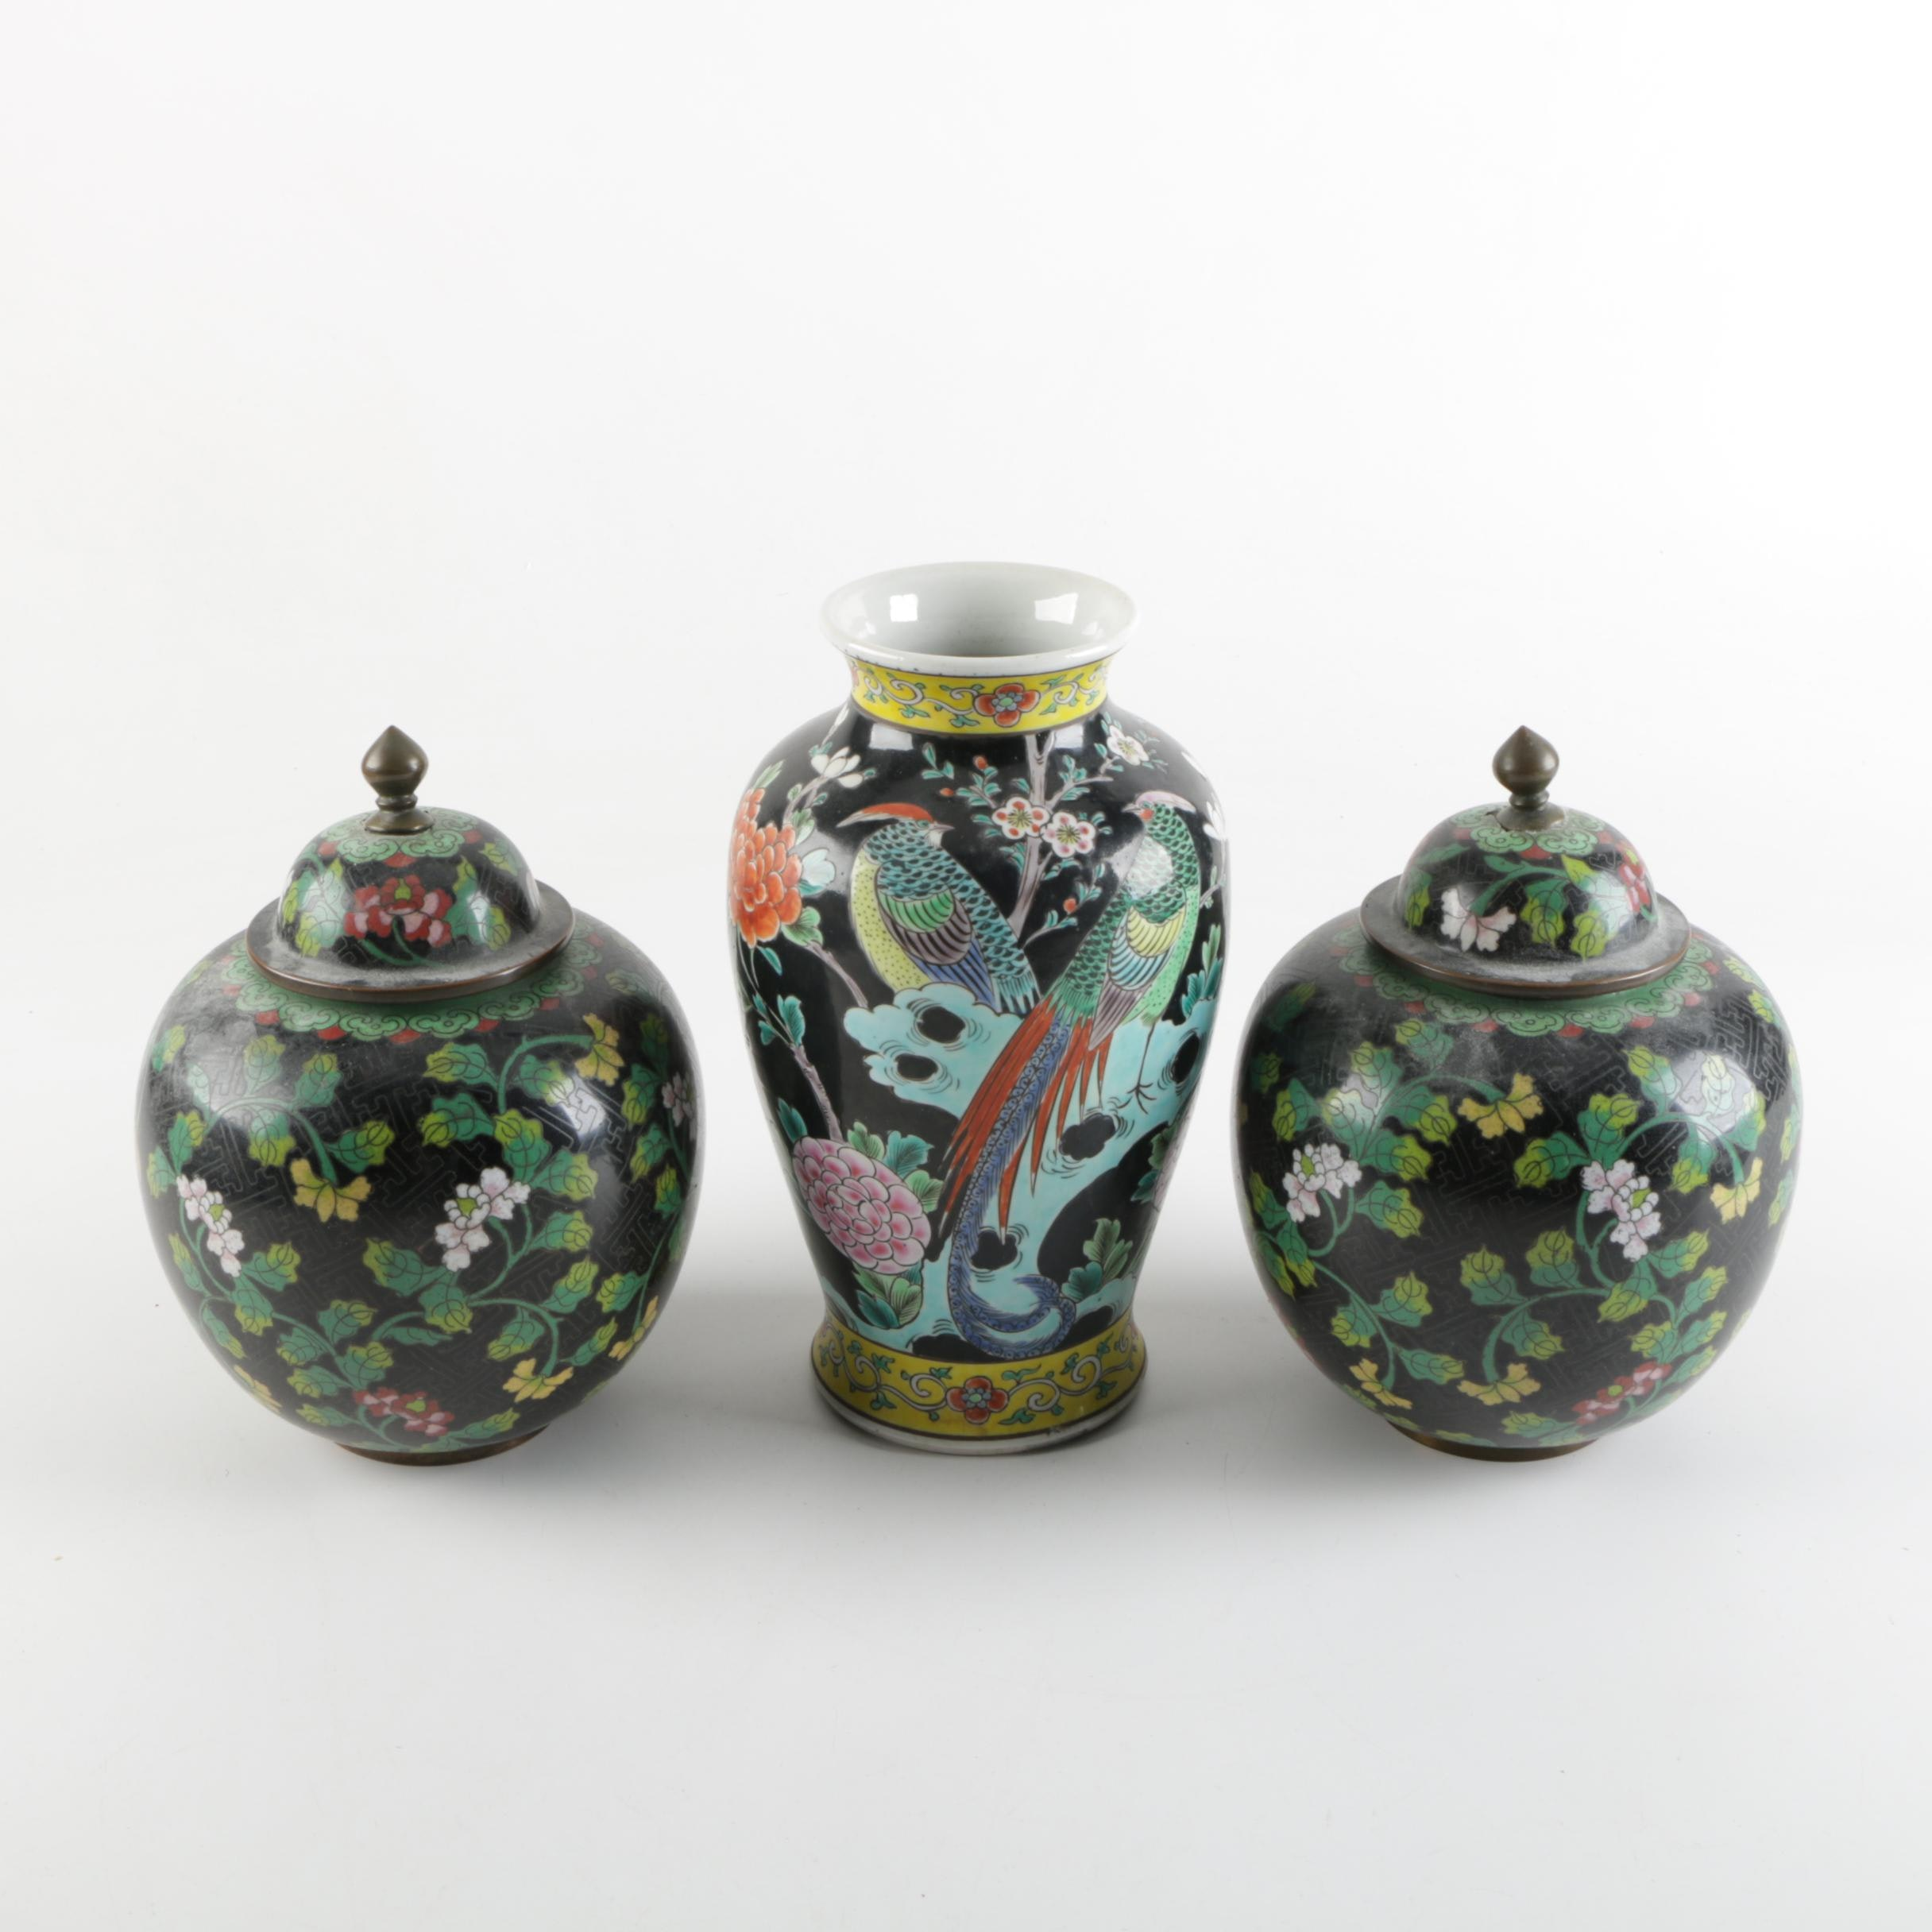 Chinese Cloisonné and Porcelain Assembled Garniture